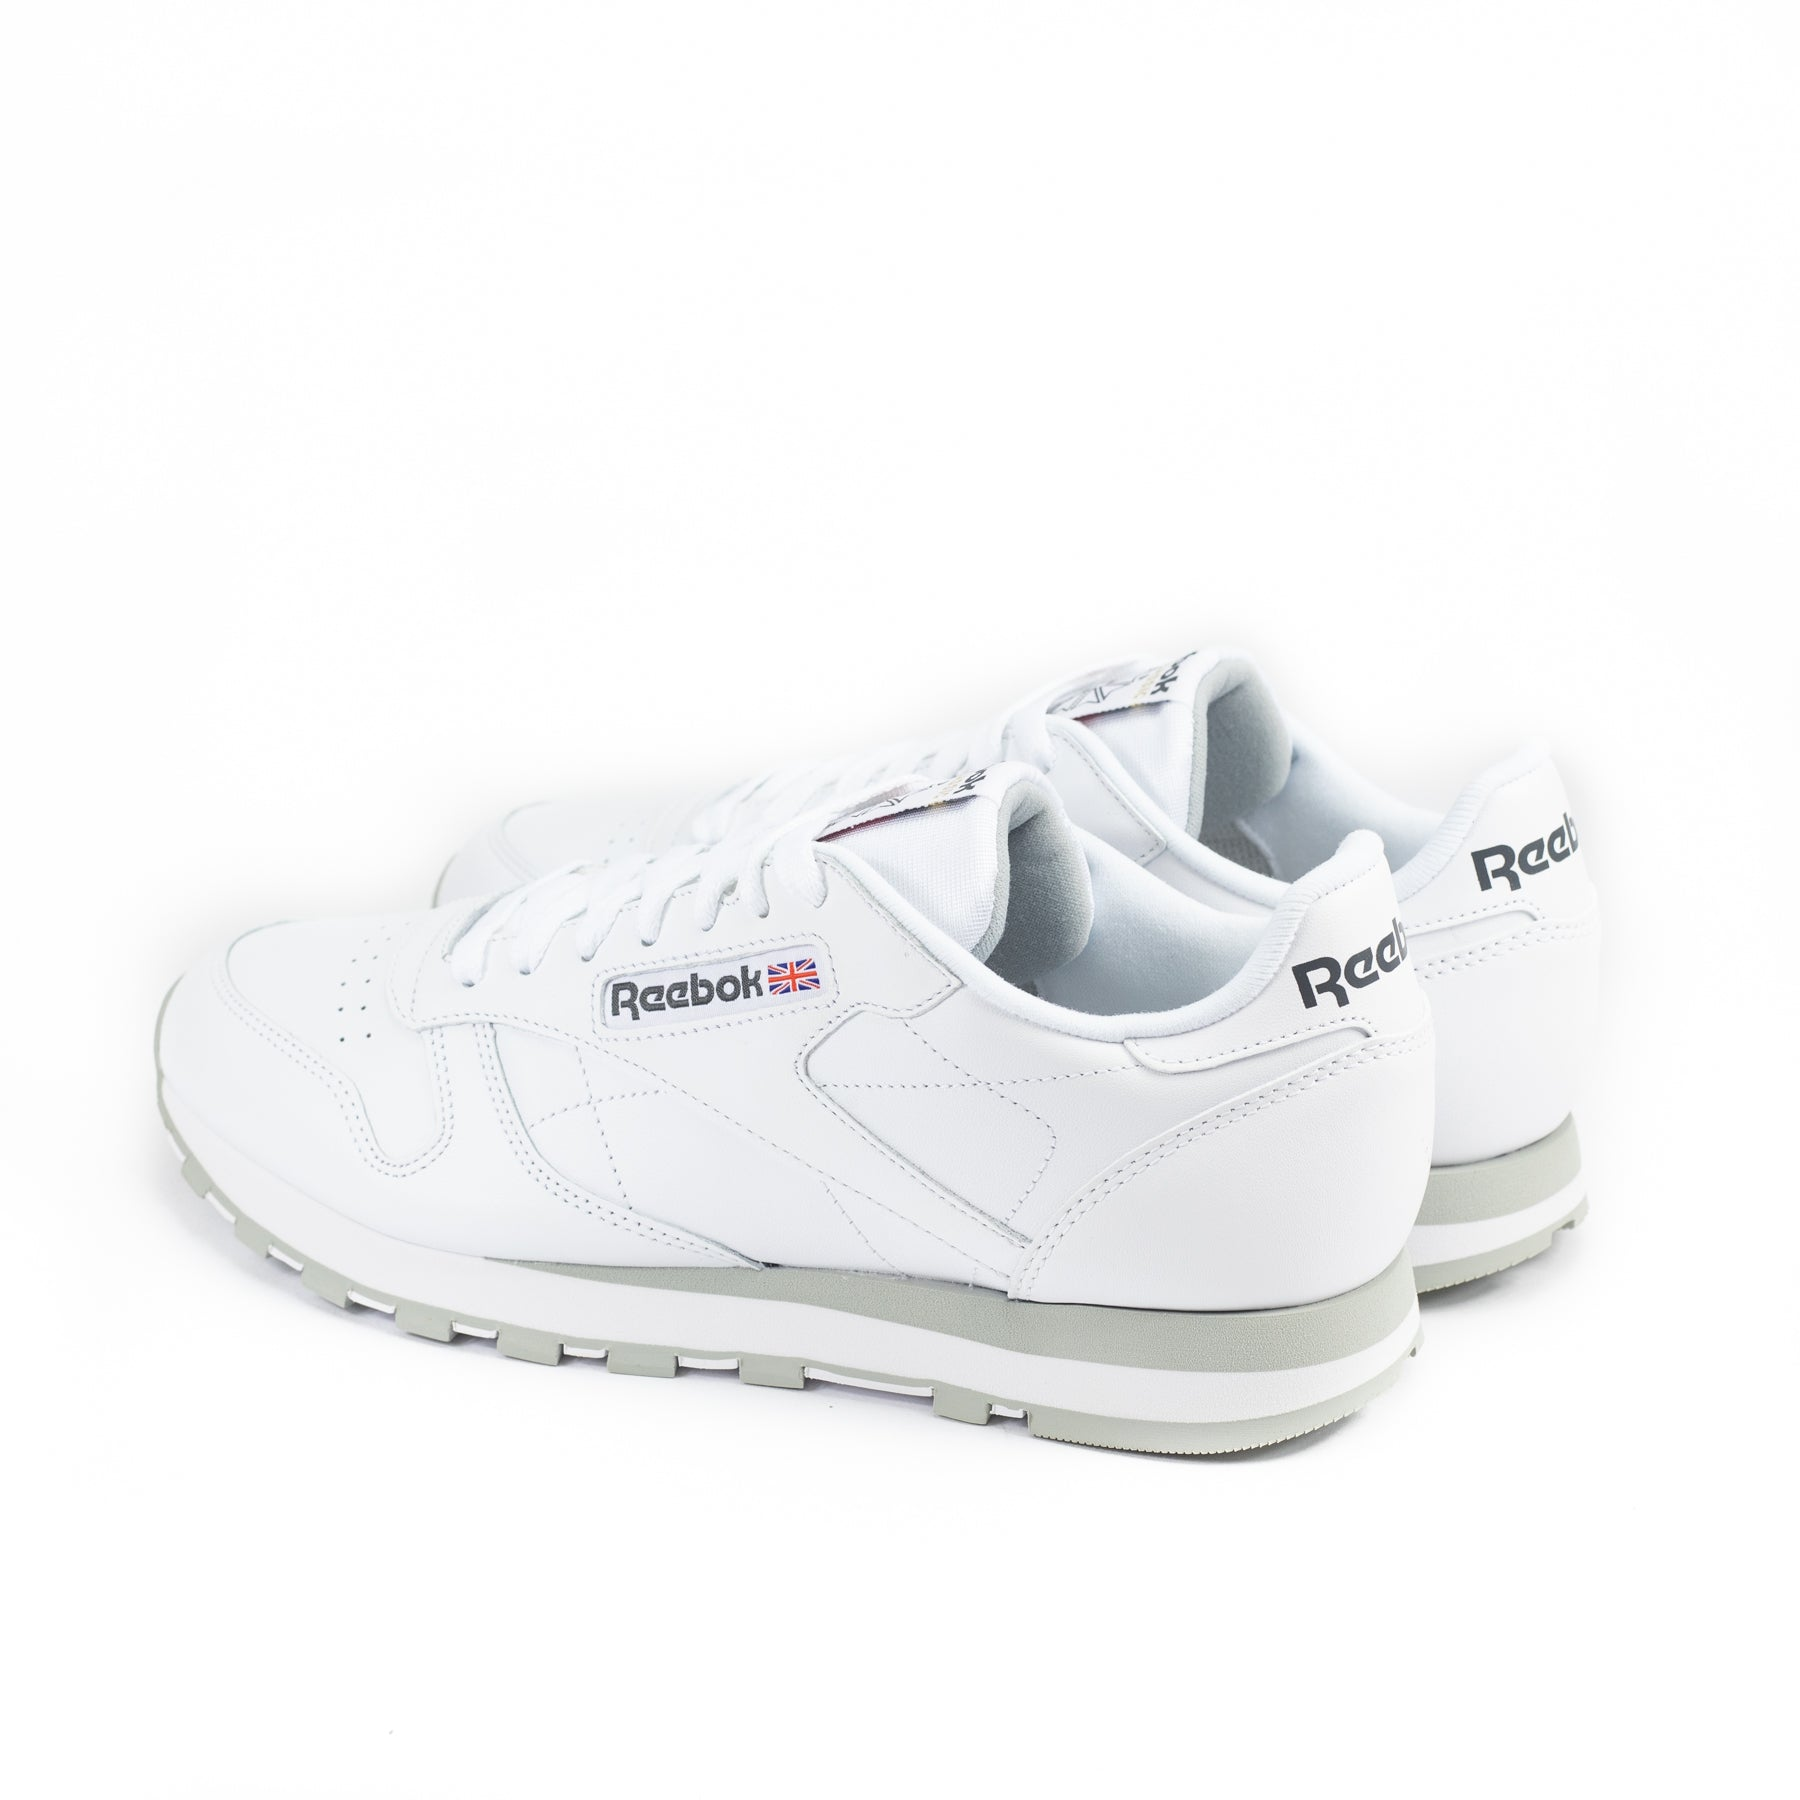 Reebok Cl Leather White Light Grey 2214